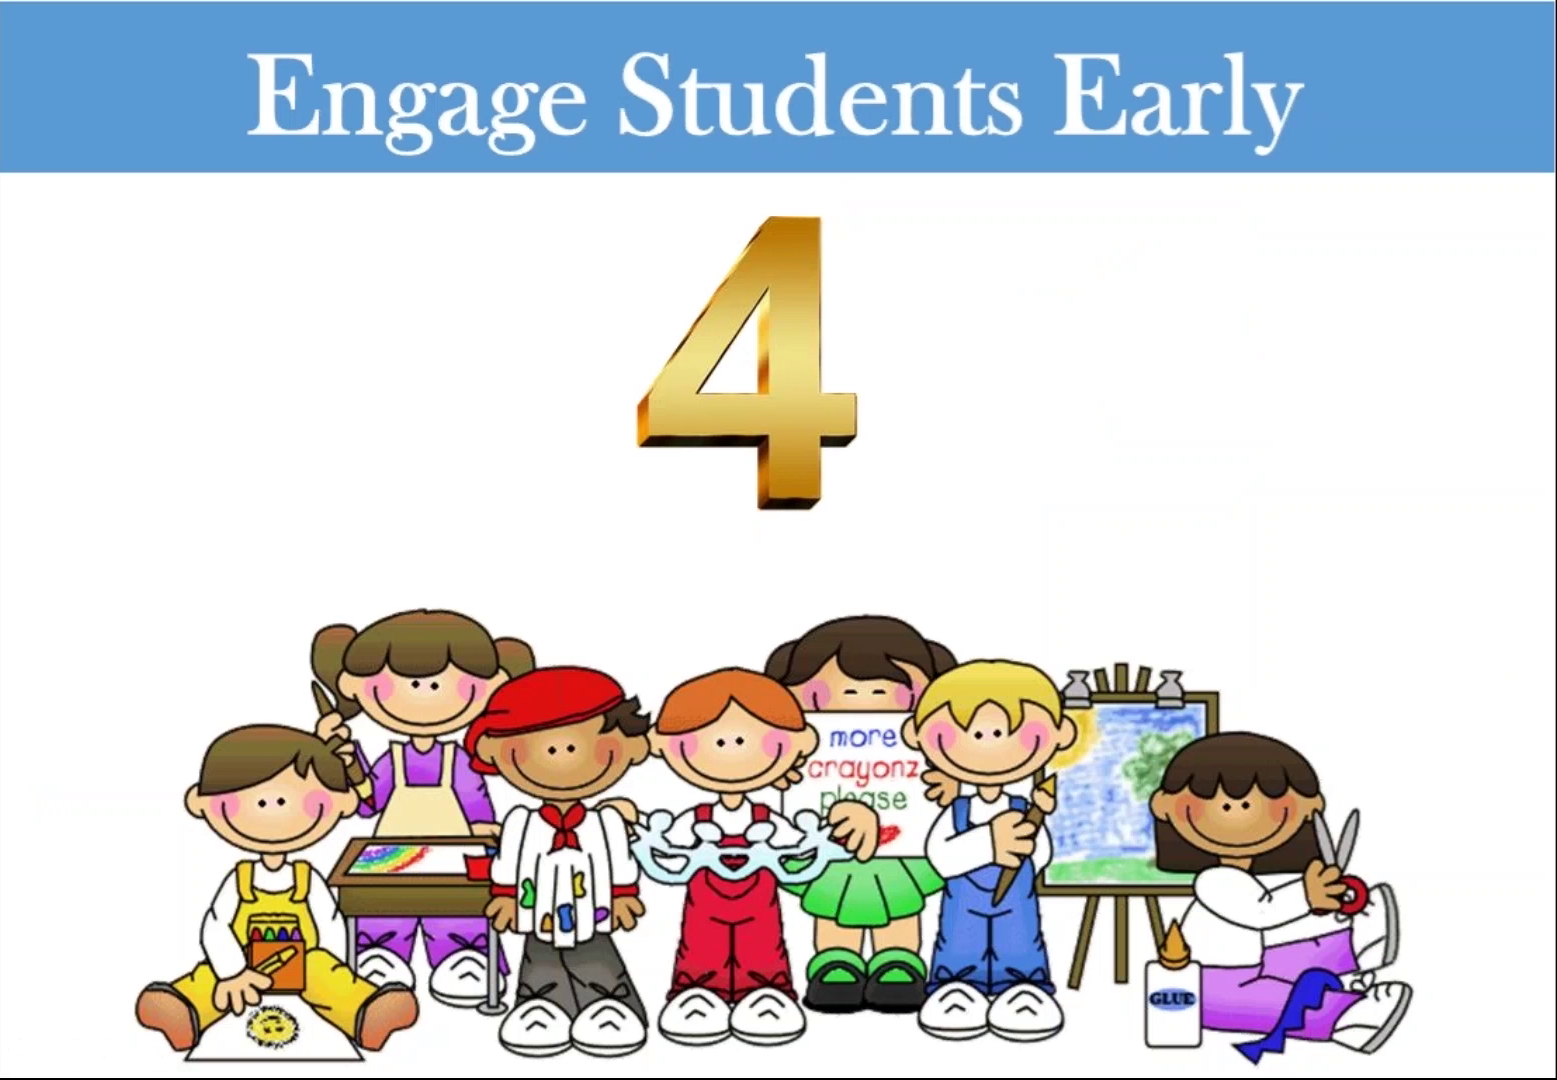 Engaging students early